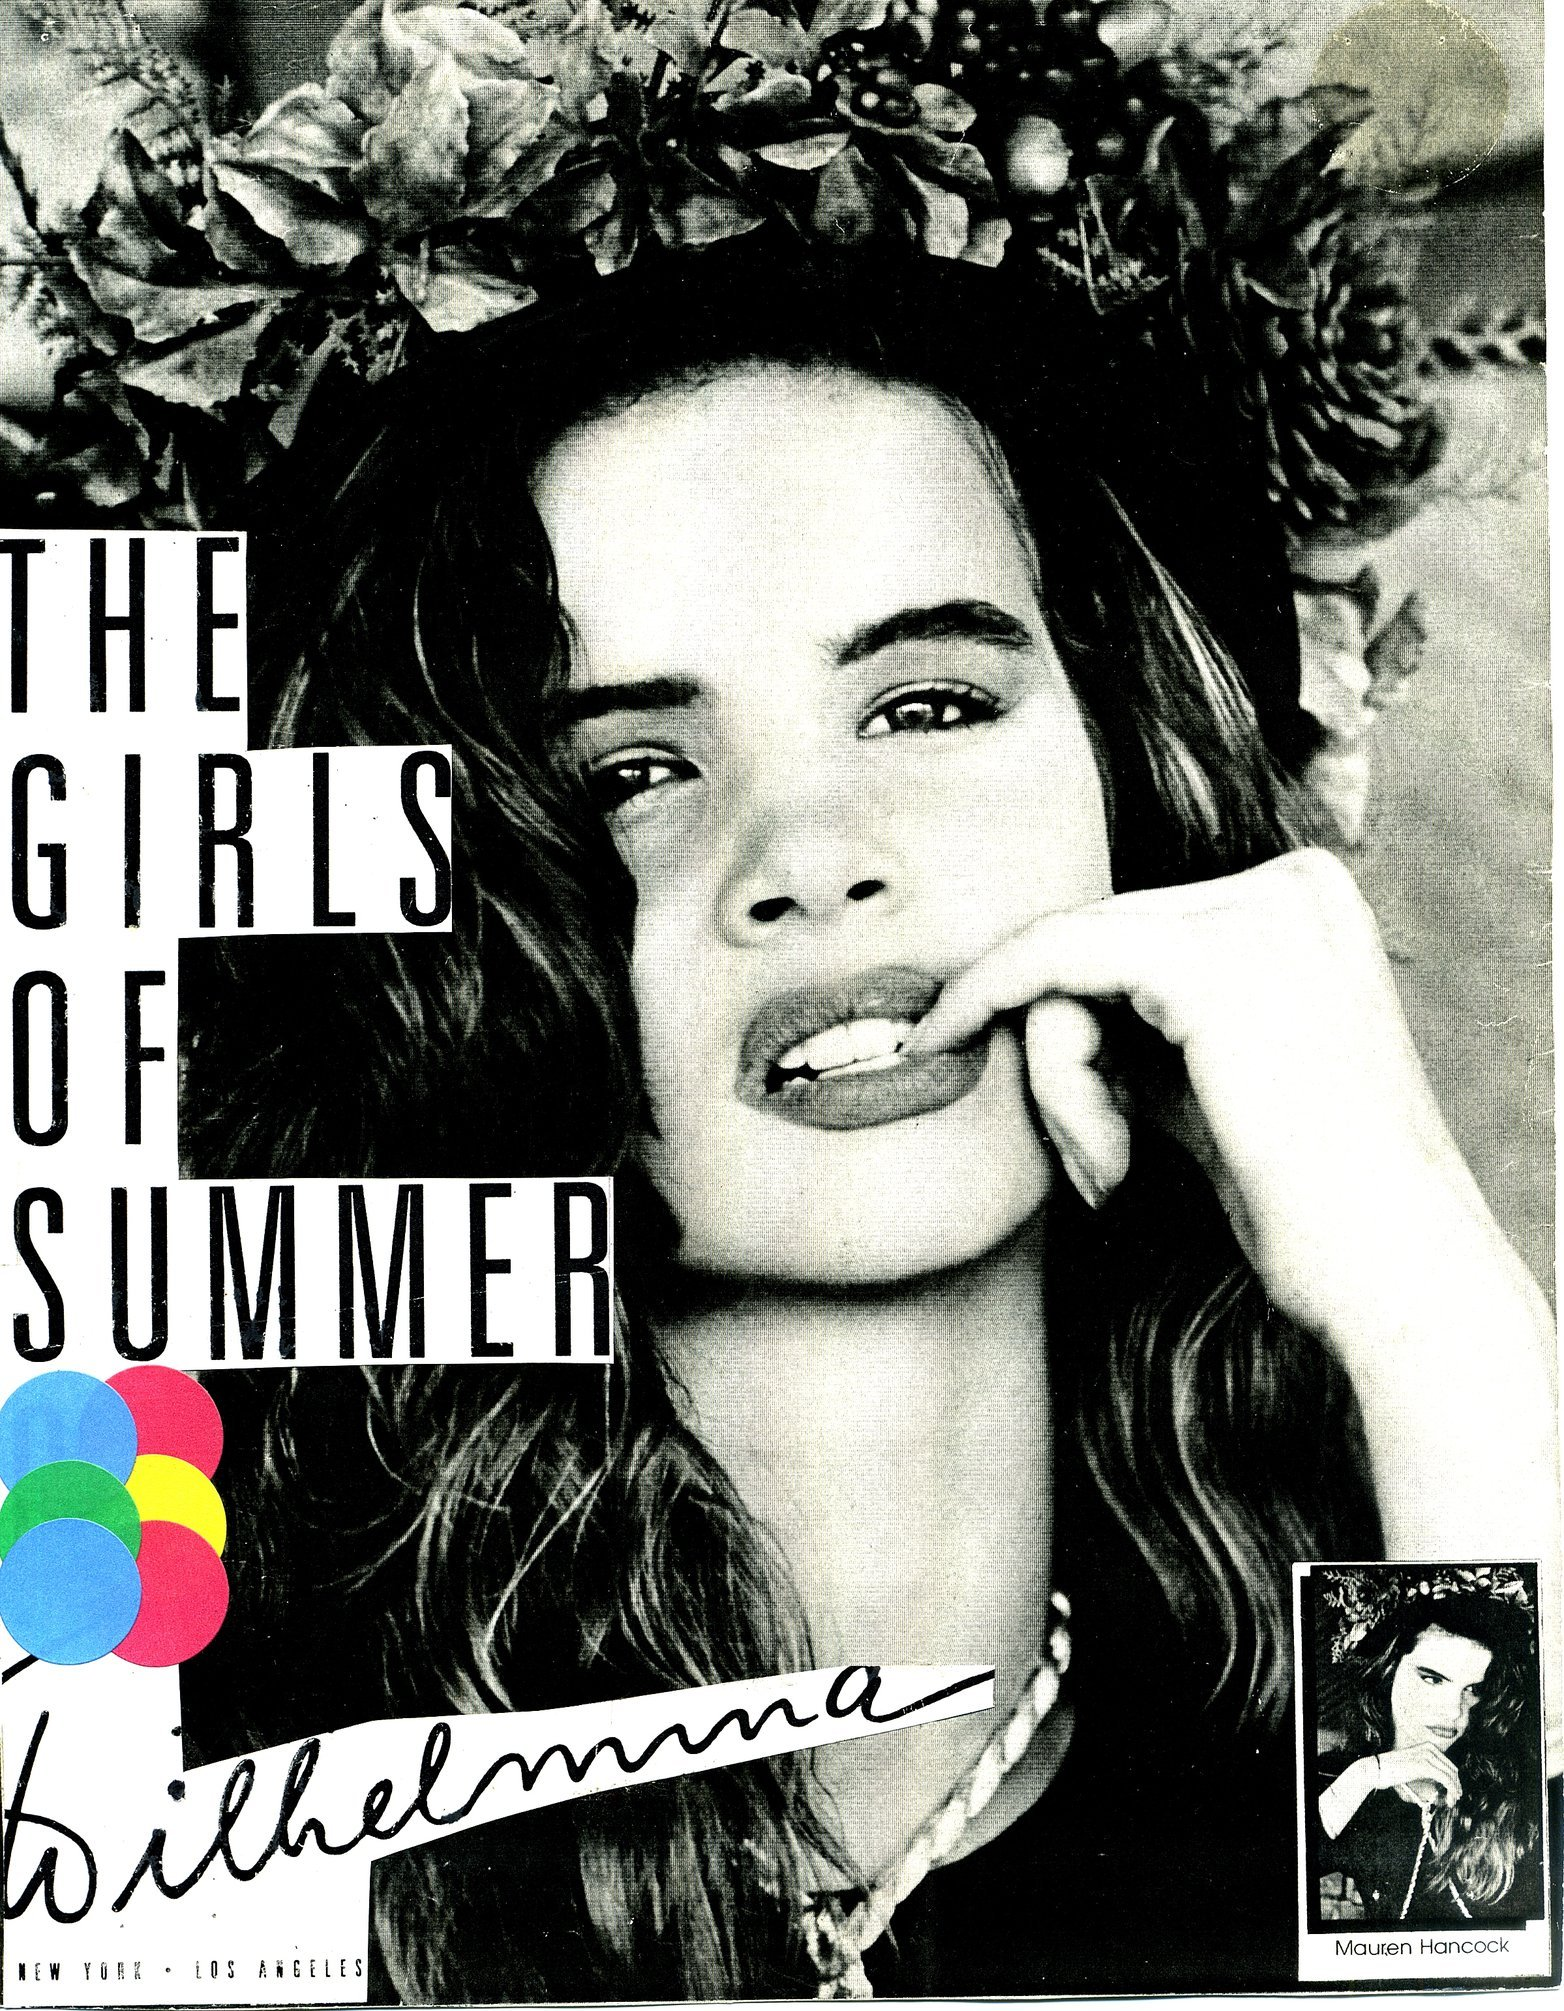 NYC model MAUREN is featured in THE GIRLS OF SUMMER for WILHELMINA MODELS in New York.